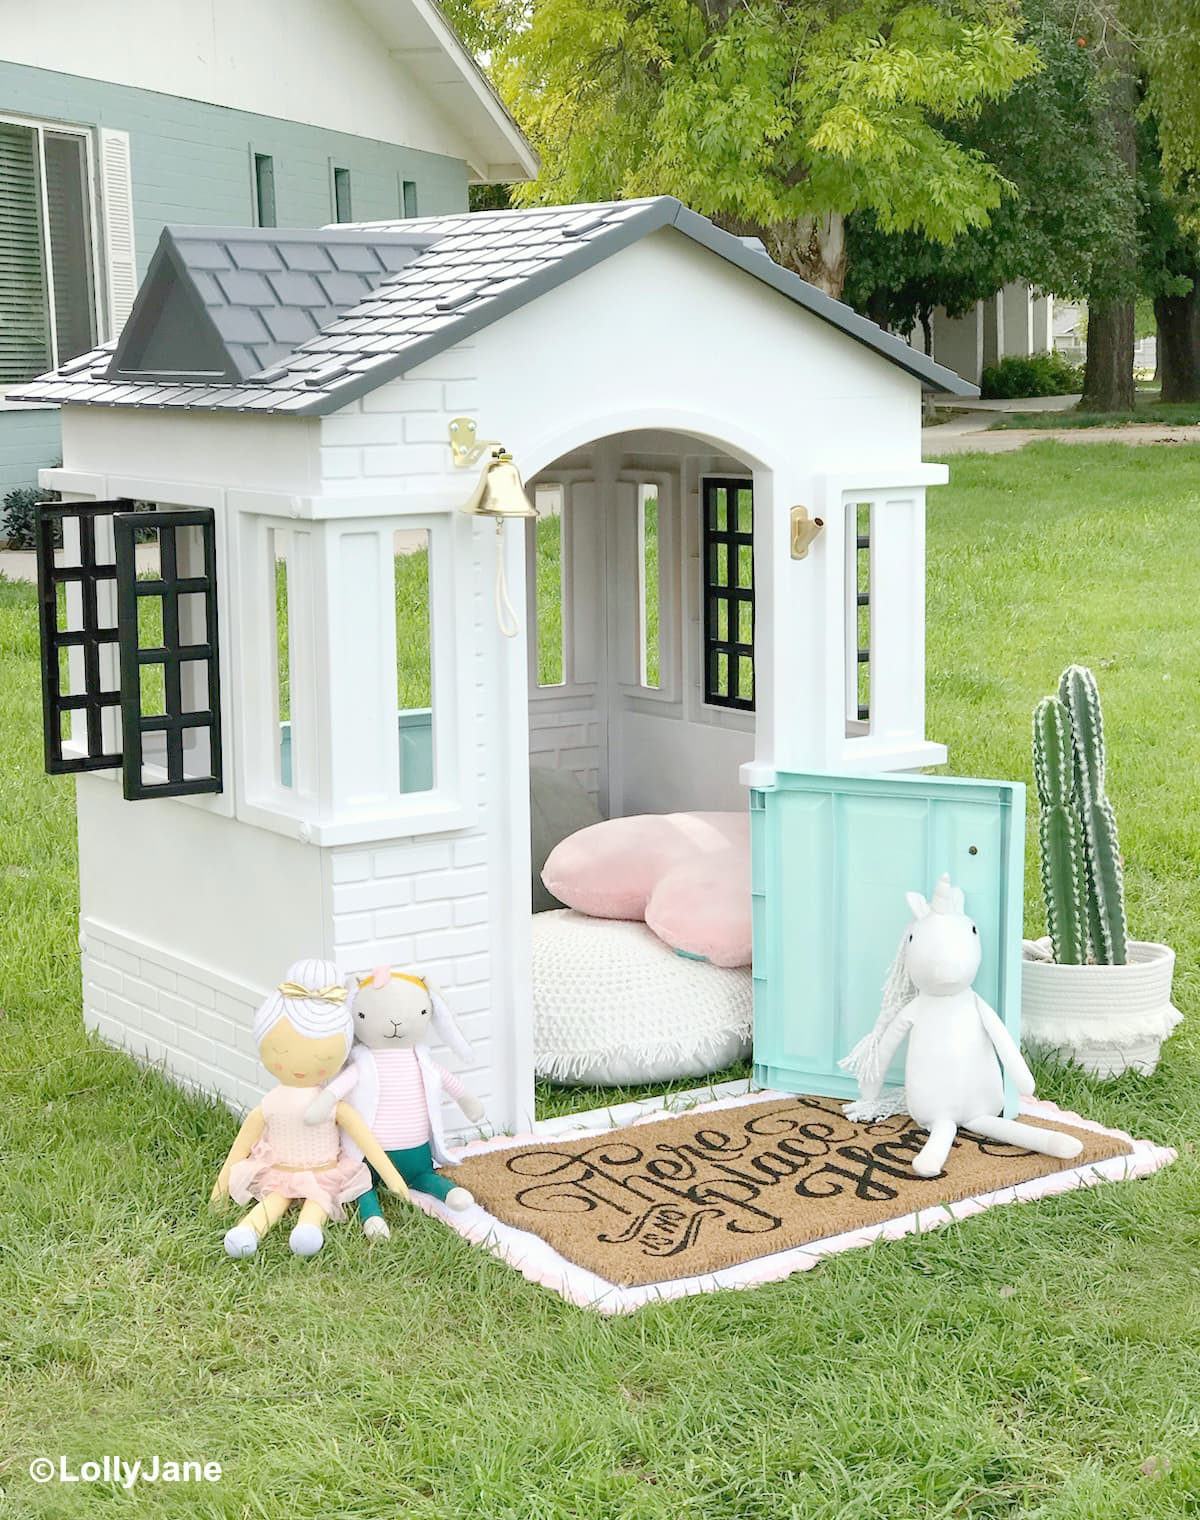 How To Paint a Plastic Playhouse Like a Pro! - Lolly Jane